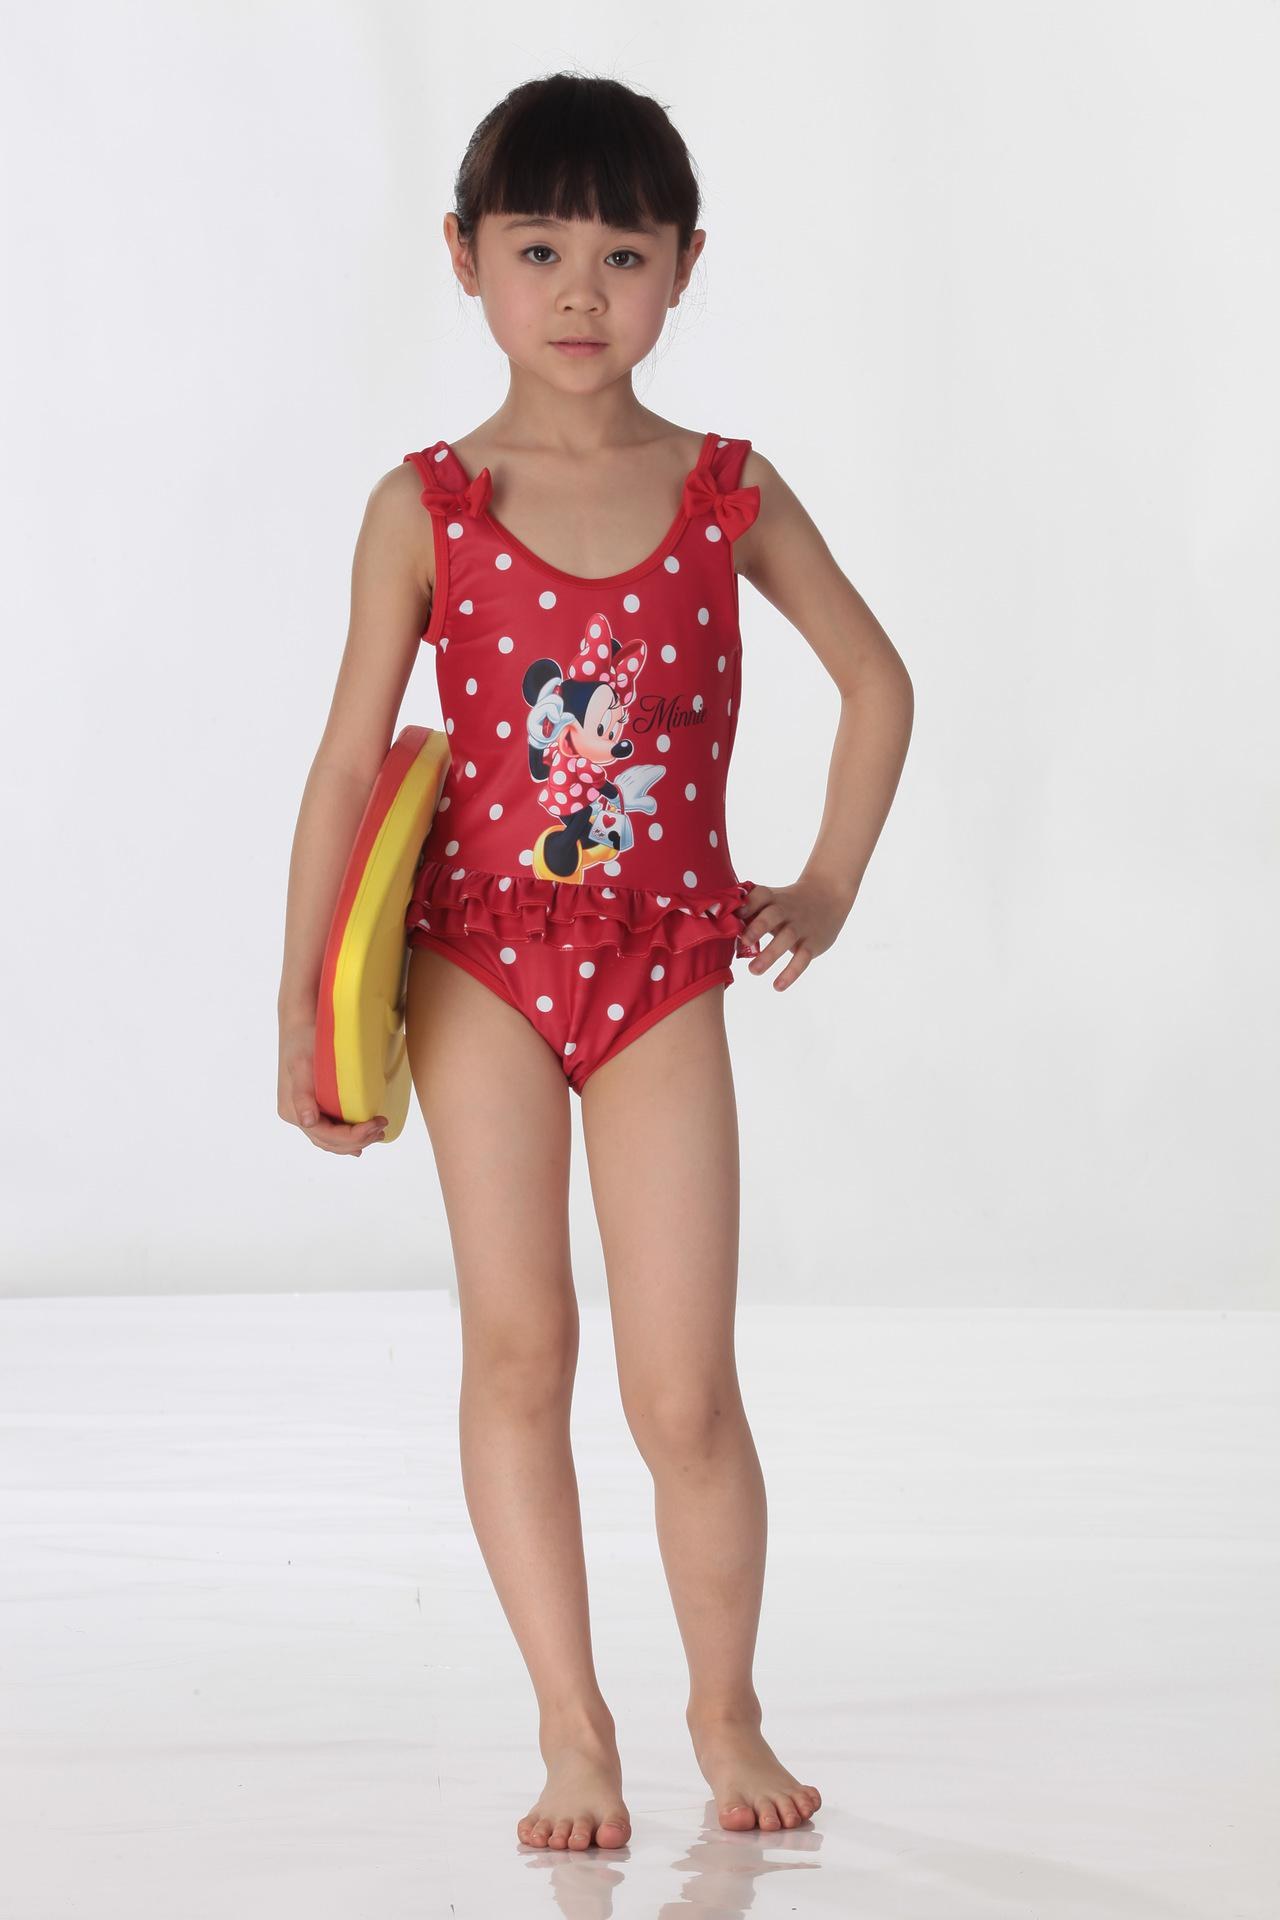 Child Swimsuit Model Kids Newhairstylesformen2014 Com